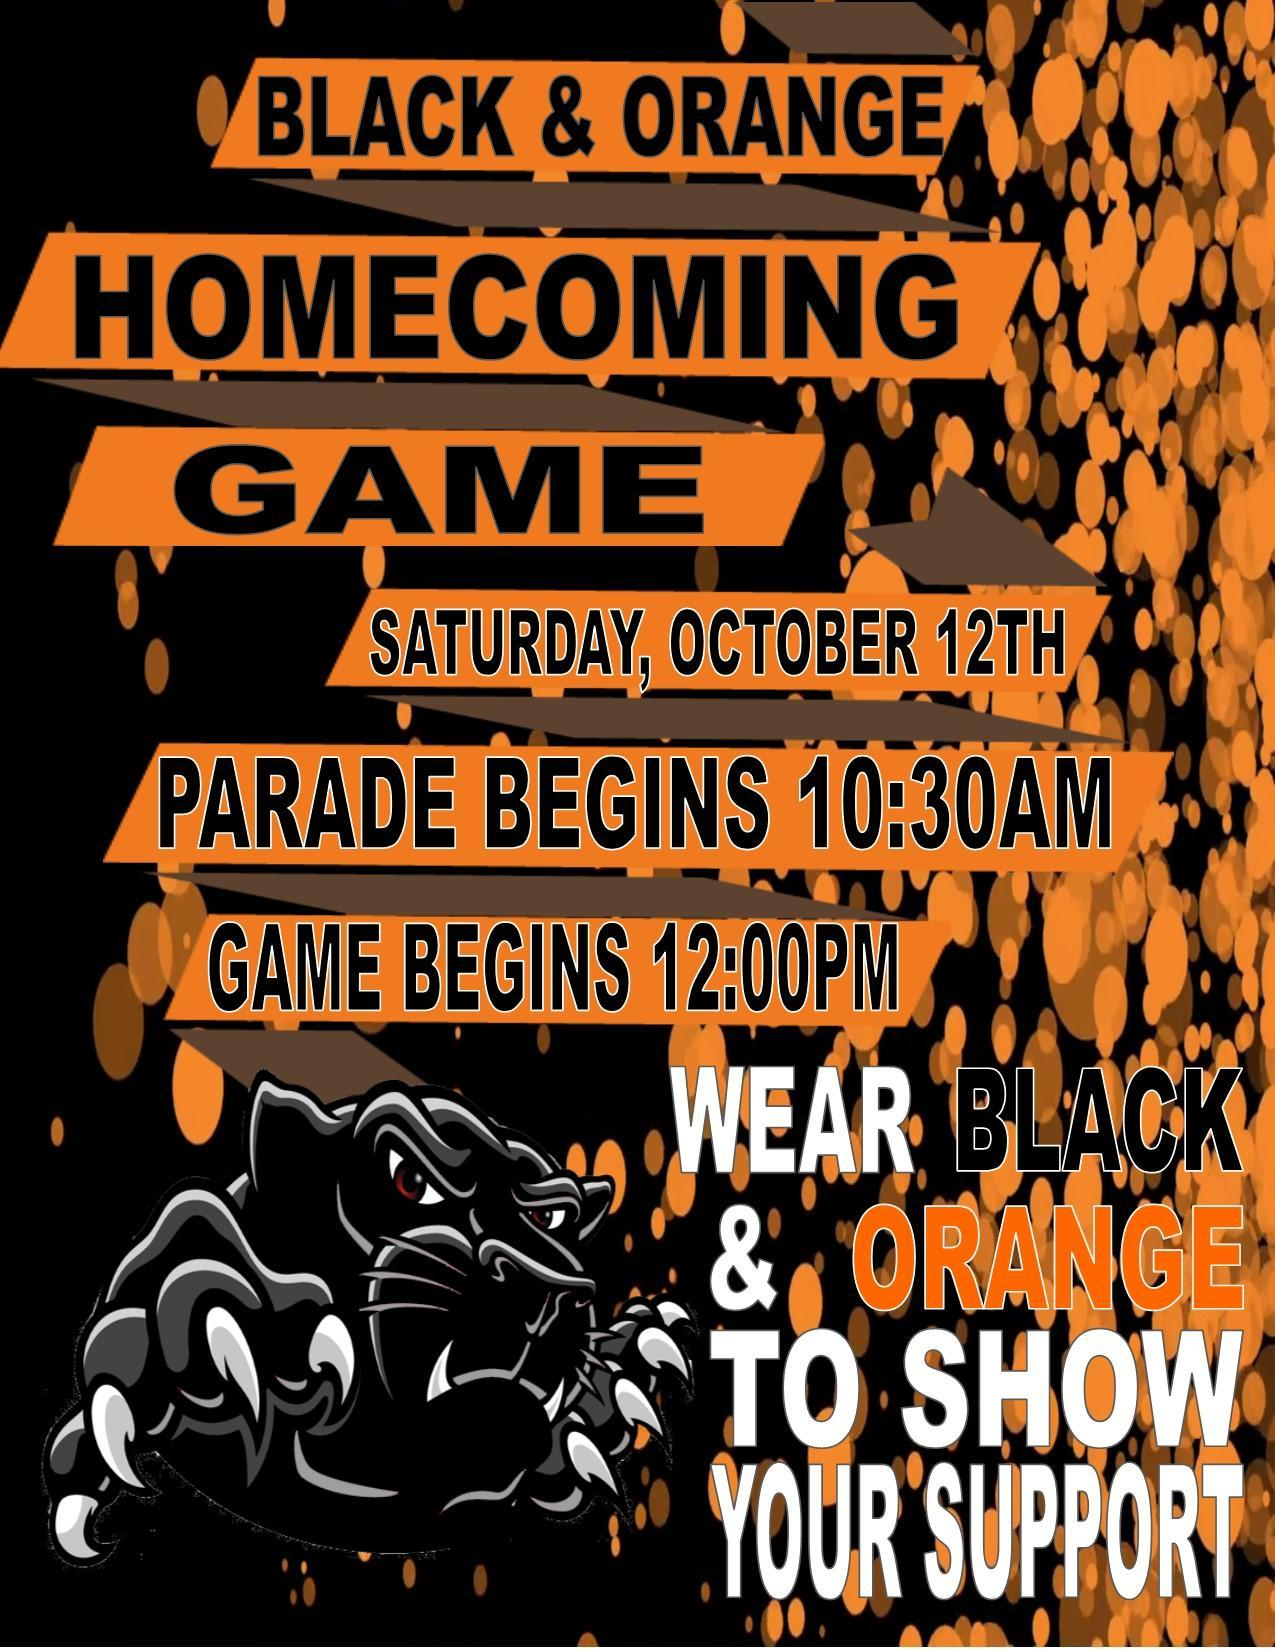 Black and orange homecoming game Oct. 12